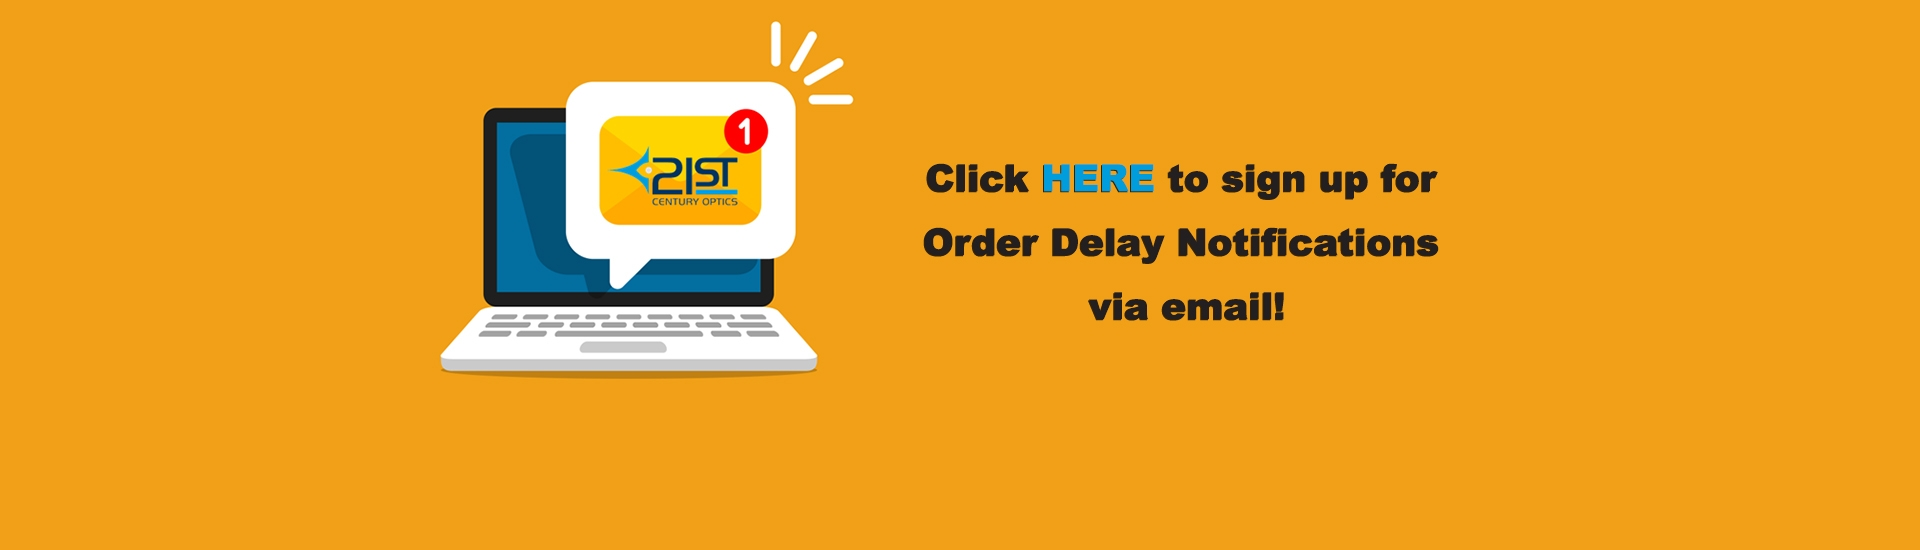 Sign up for order delay notifications